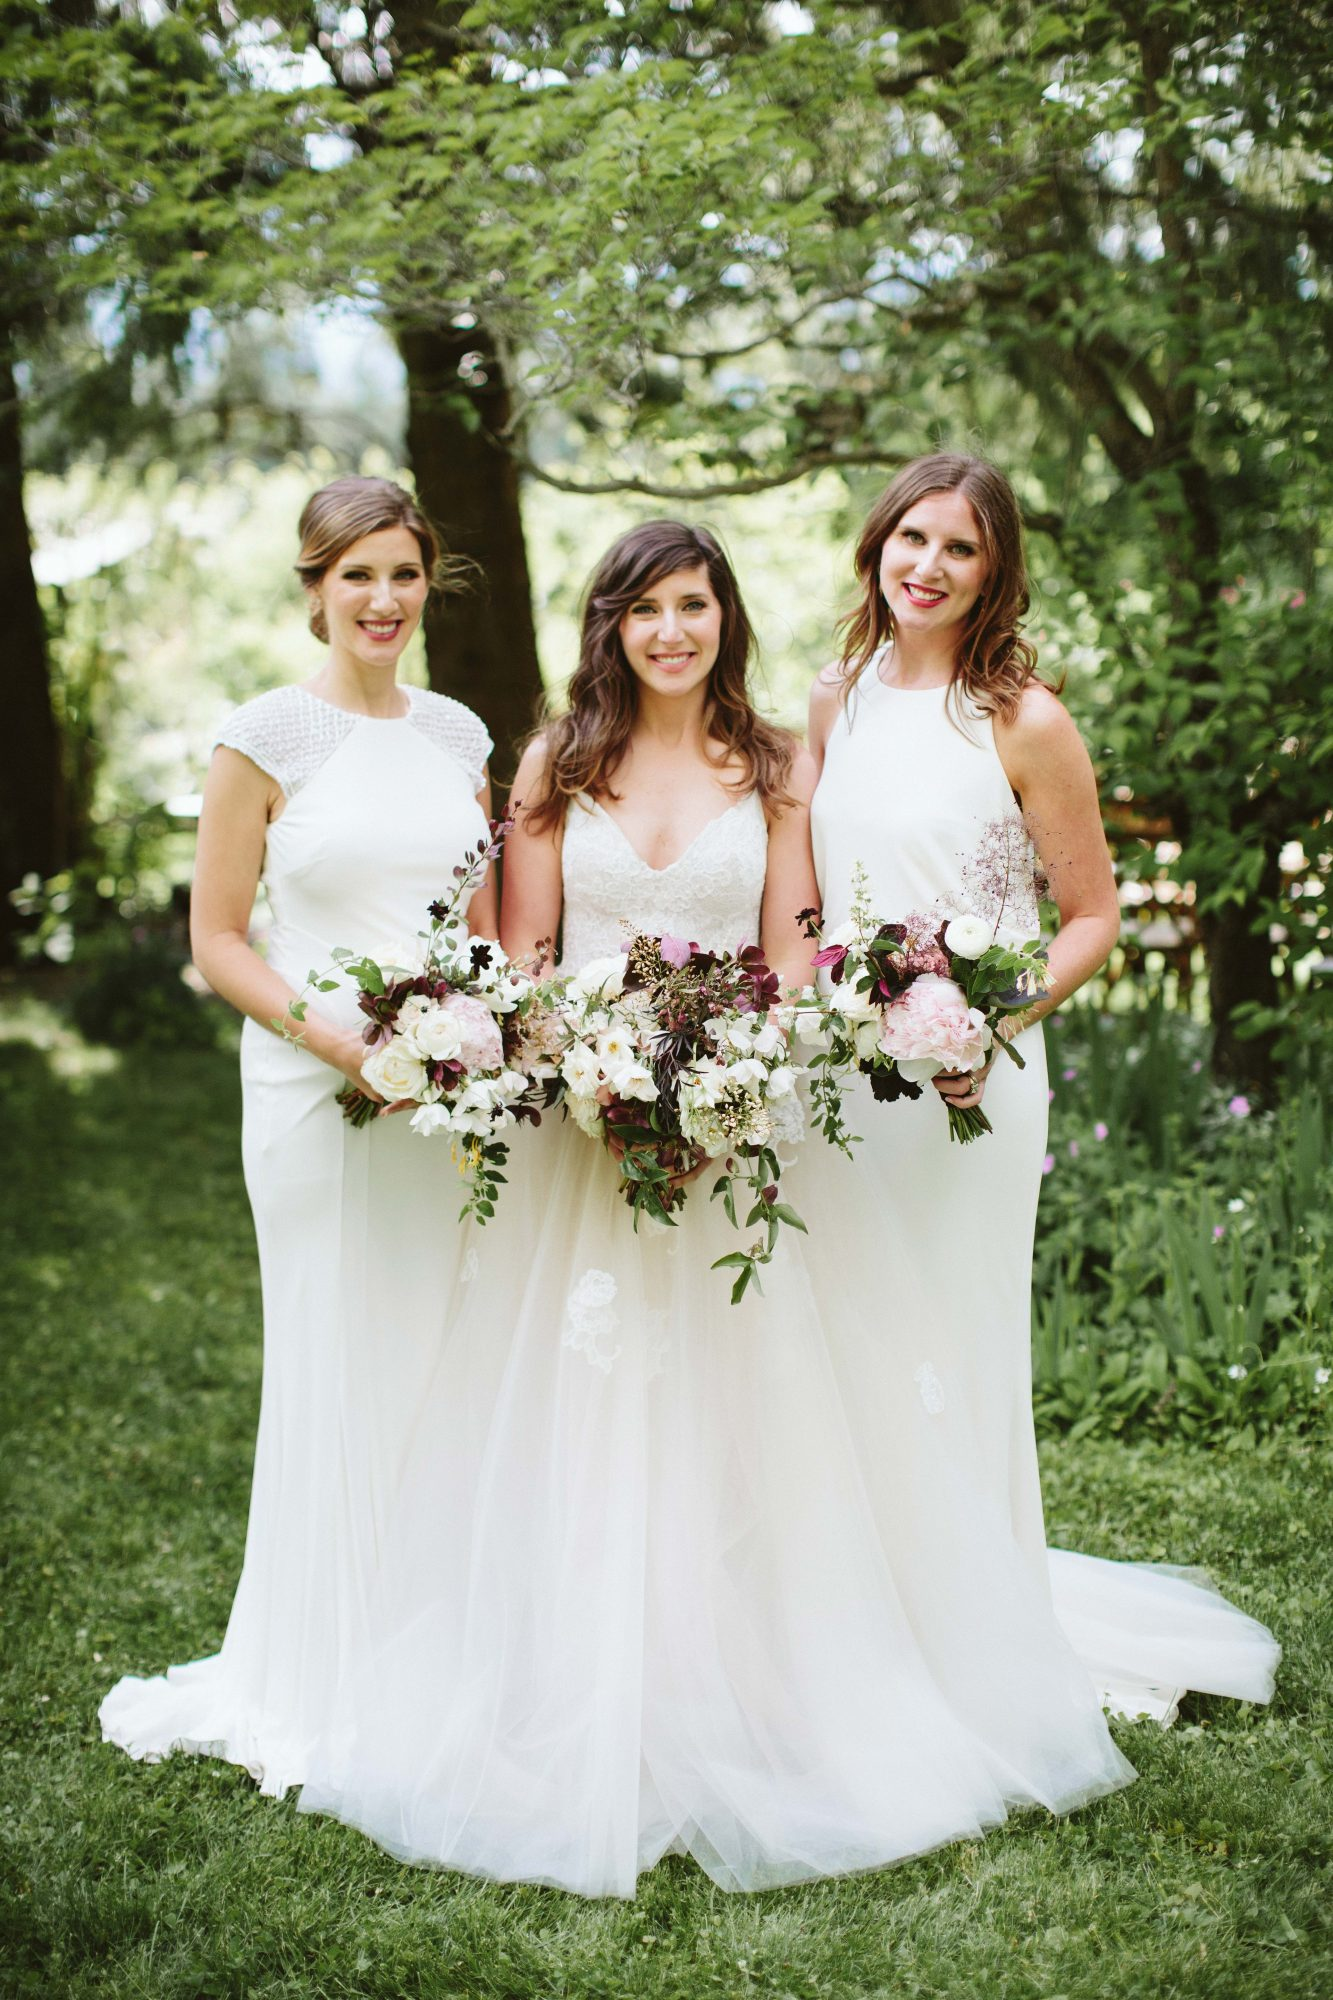 Complementary White Bridesmaids' Dresses